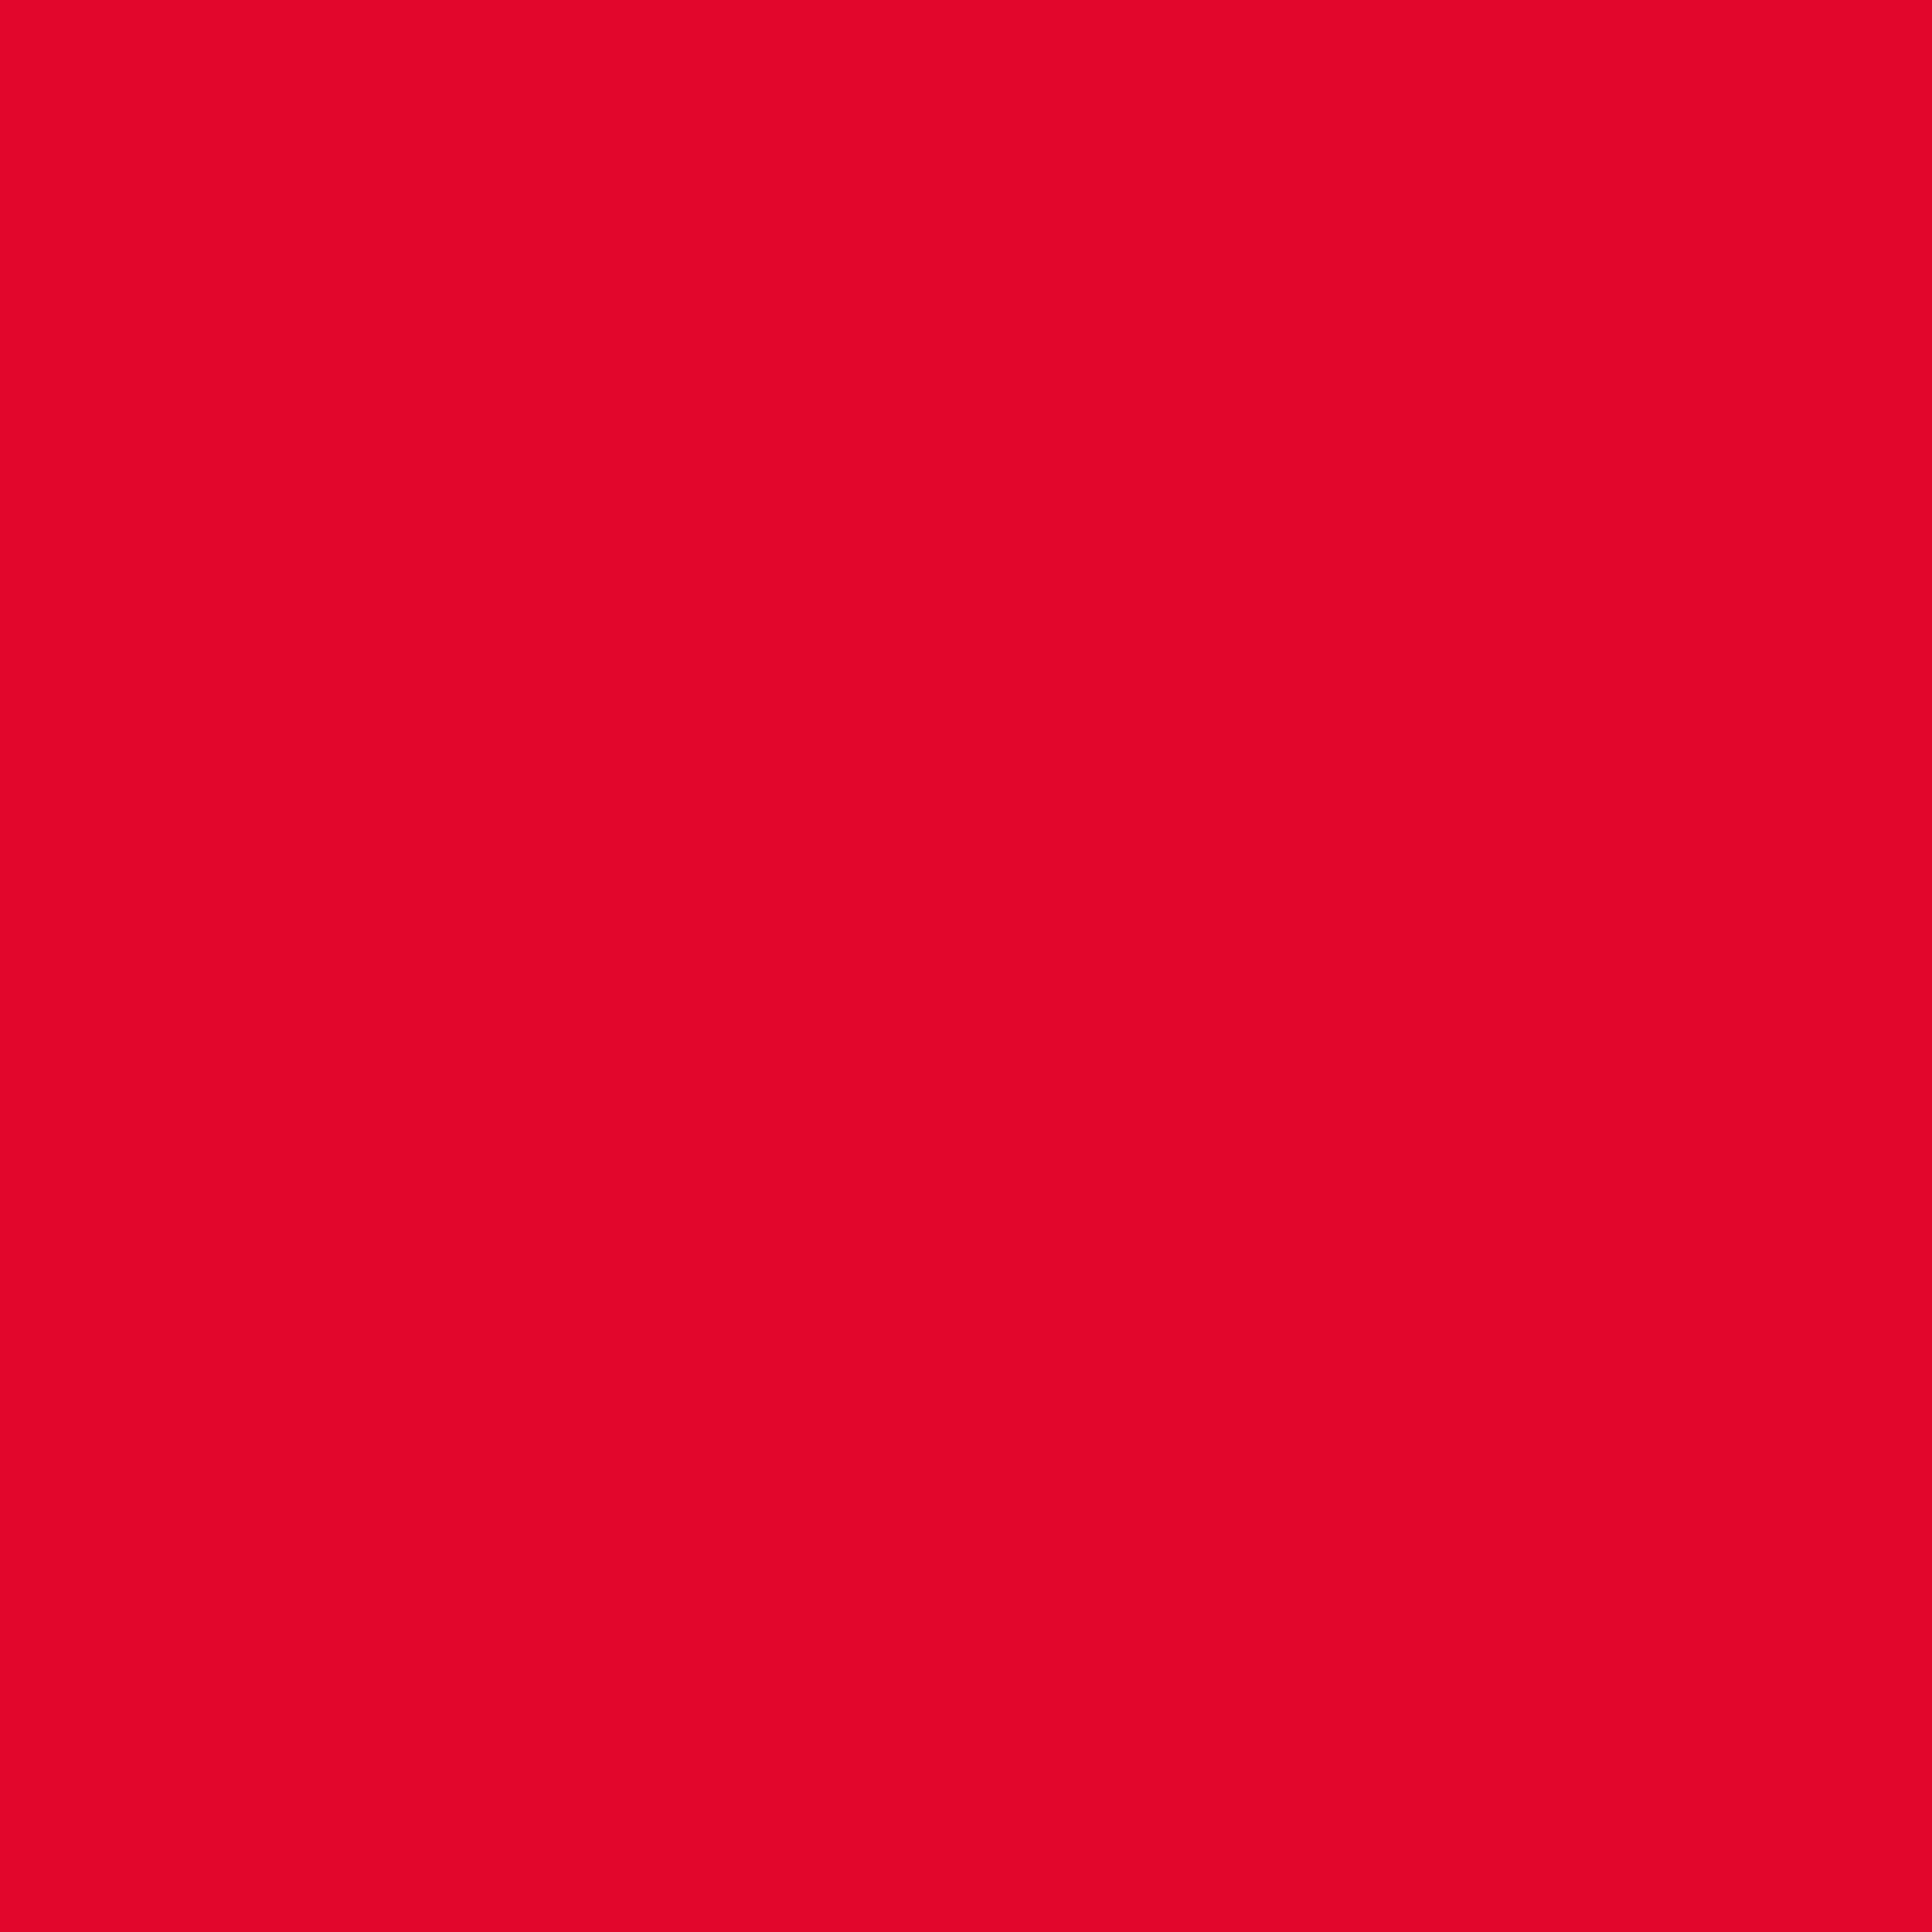 2732x2732 Medium Candy Apple Red Solid Color Background